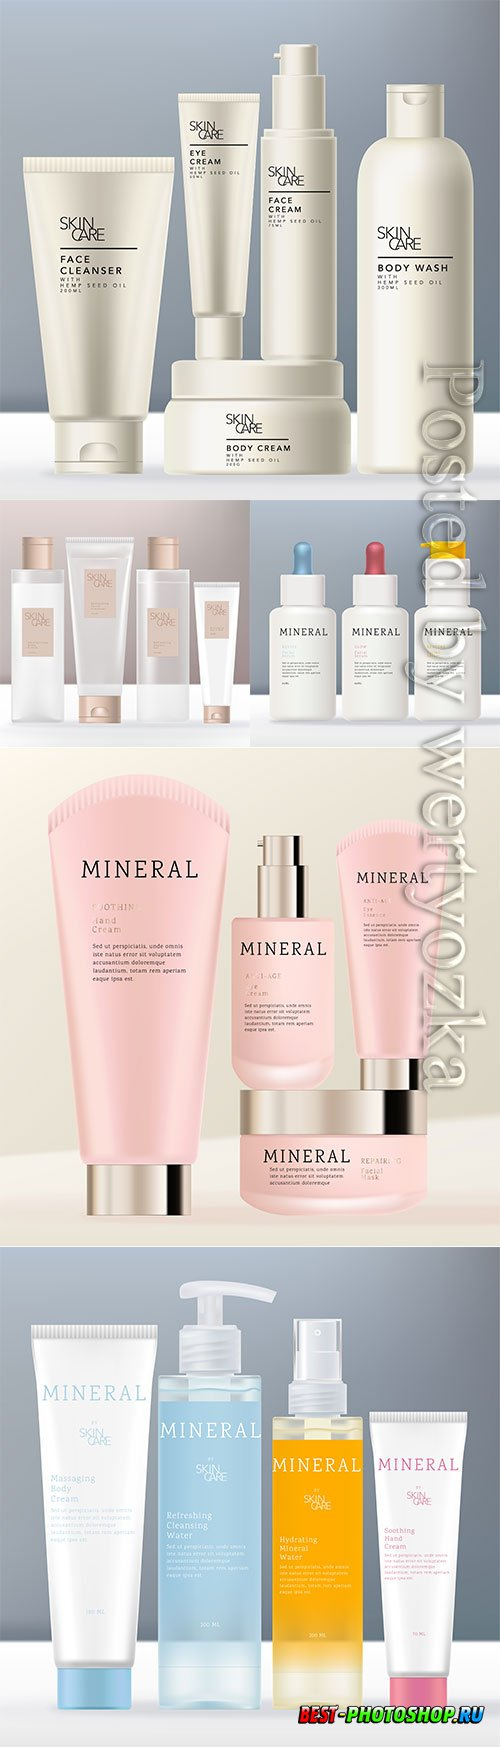 Realistic cosmetic products advertising vector illustration